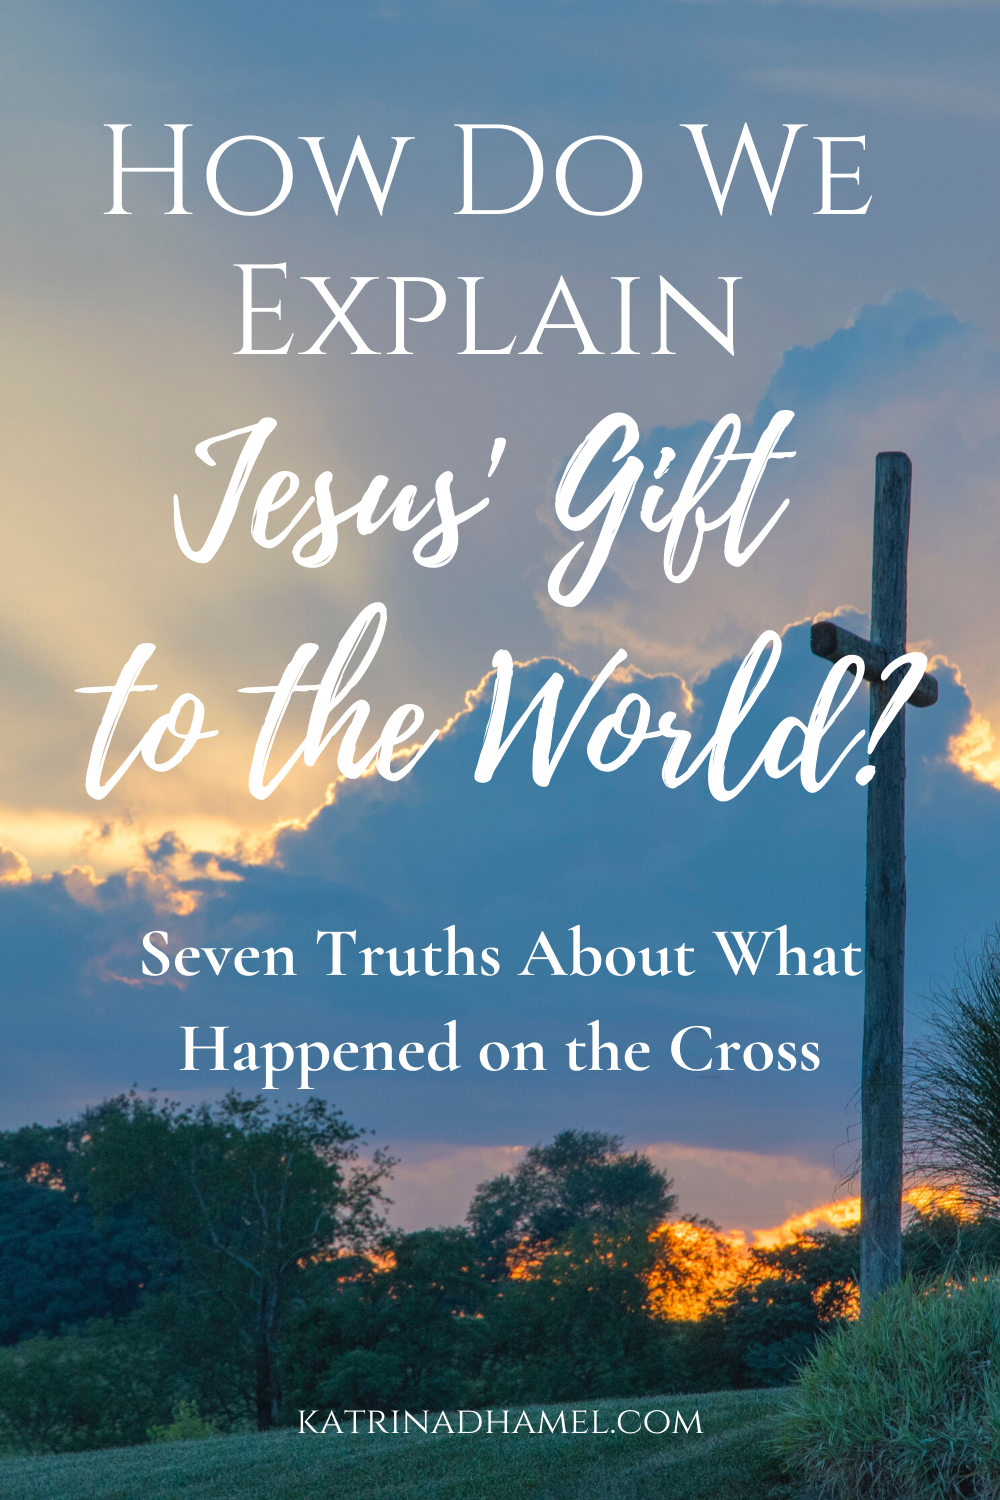 How do we explain Jesus' Gift to the World? Jump in the Way with Katrina D Hamel at https://katrina-d-hamel.com photo credit to david-dilbert on unsplash